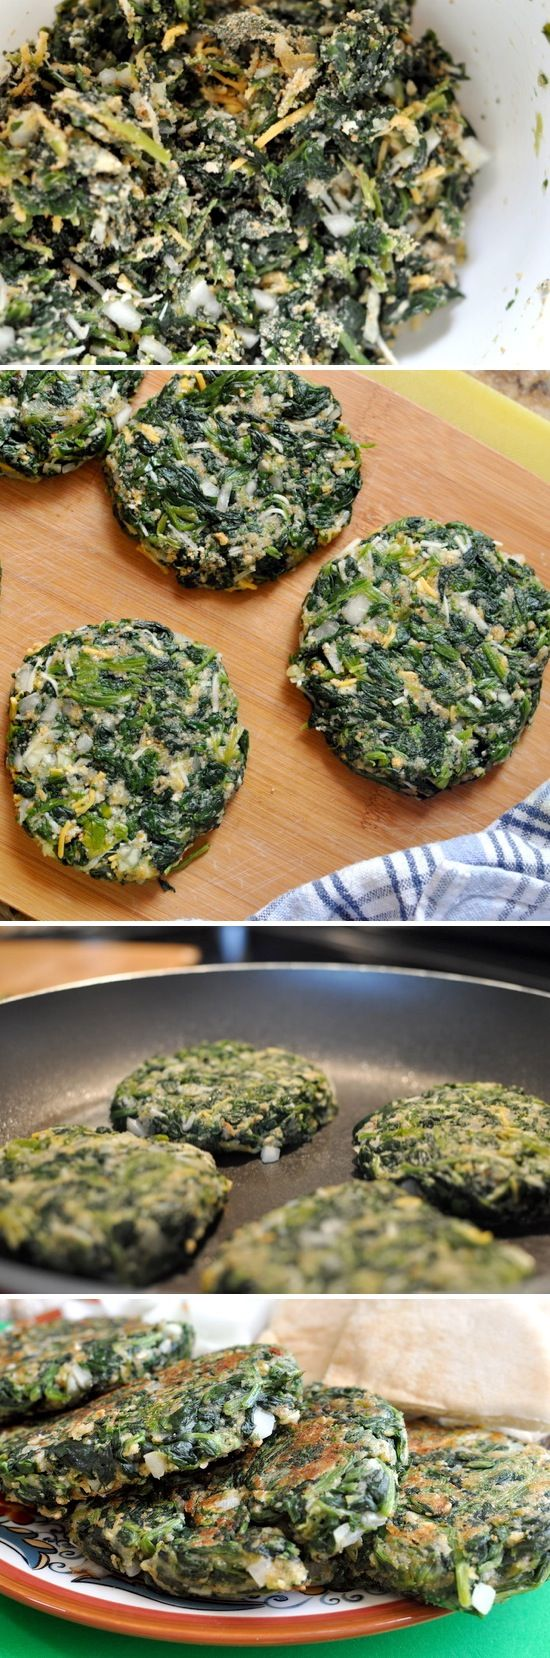 "1 bag of thawed and well drained chopped spinach 2 egg whites 1 whole egg 1/4 c diced onion 1/2 c shredded cheese 1/2 c bread crumbs 1 tsp red pepper flakes 1 tsp salt 1/2 tsp garlic powder Mix well in a bowl, form into patties, Cook for 4-6 minutes each side @ med heat in non-stick skillet, Serve on your choice of bread product, or eat them ""naked""."